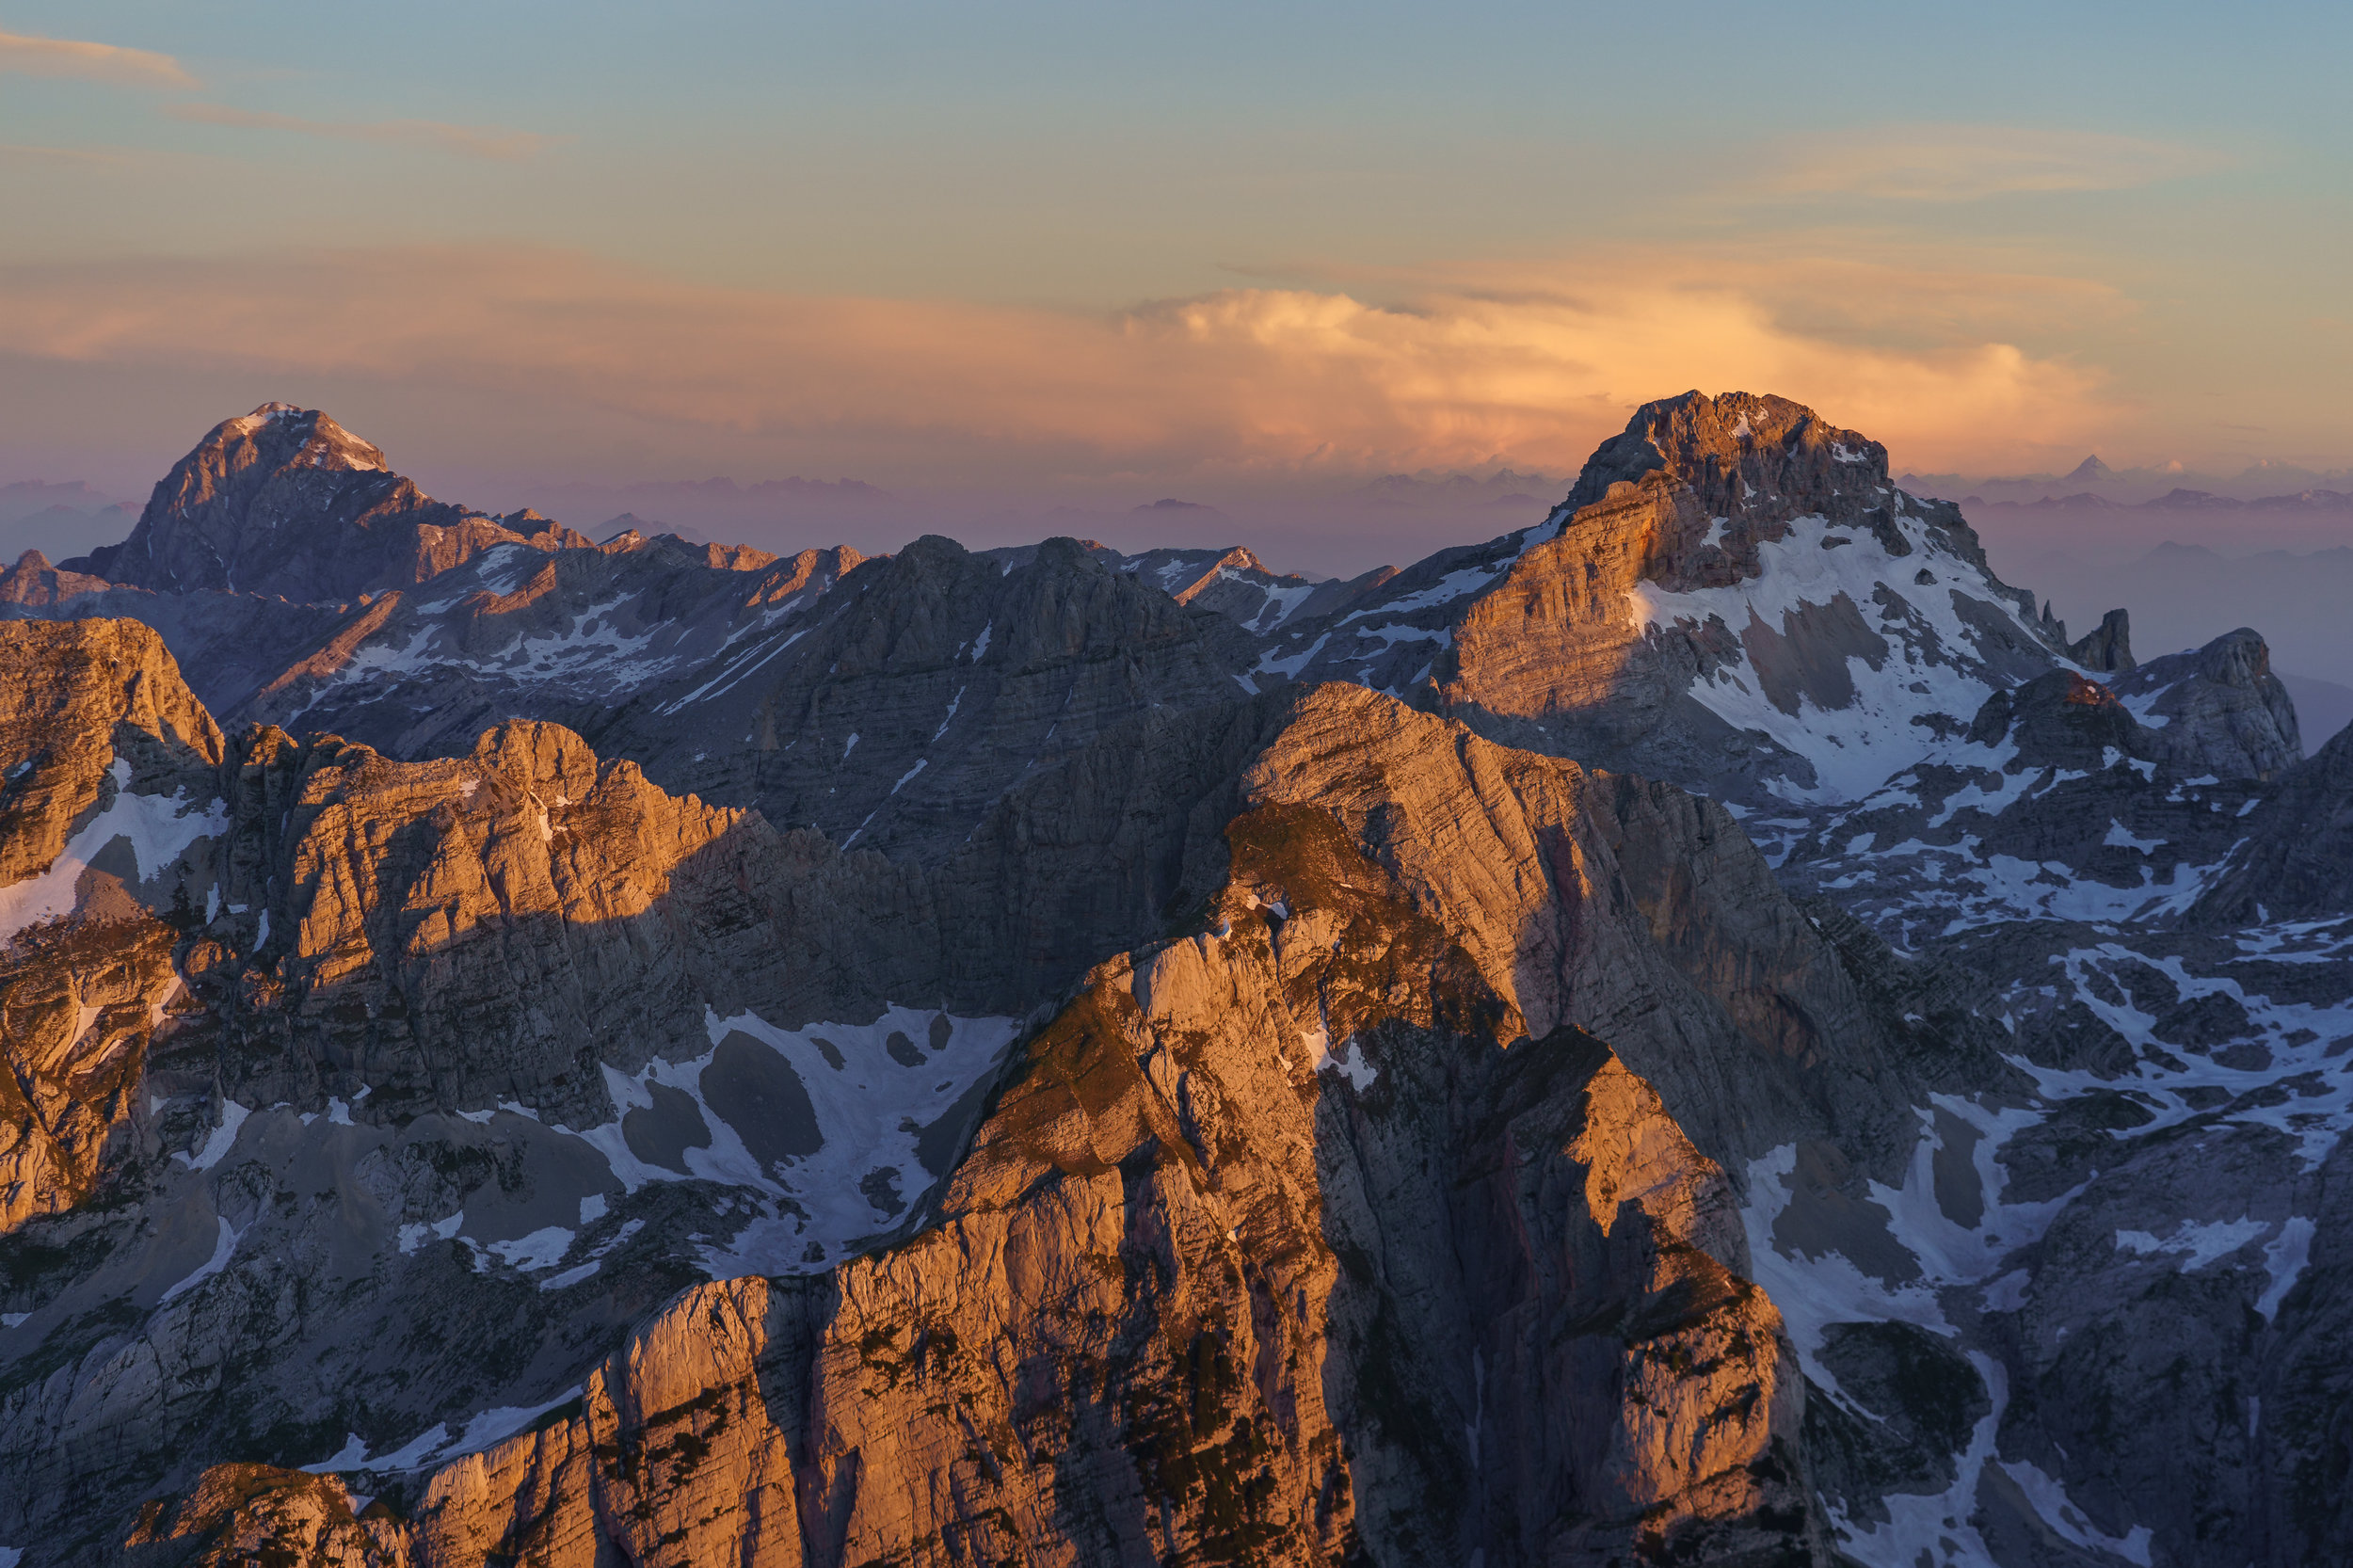 Mt. Mangart and Mt. Razor at sunrise.